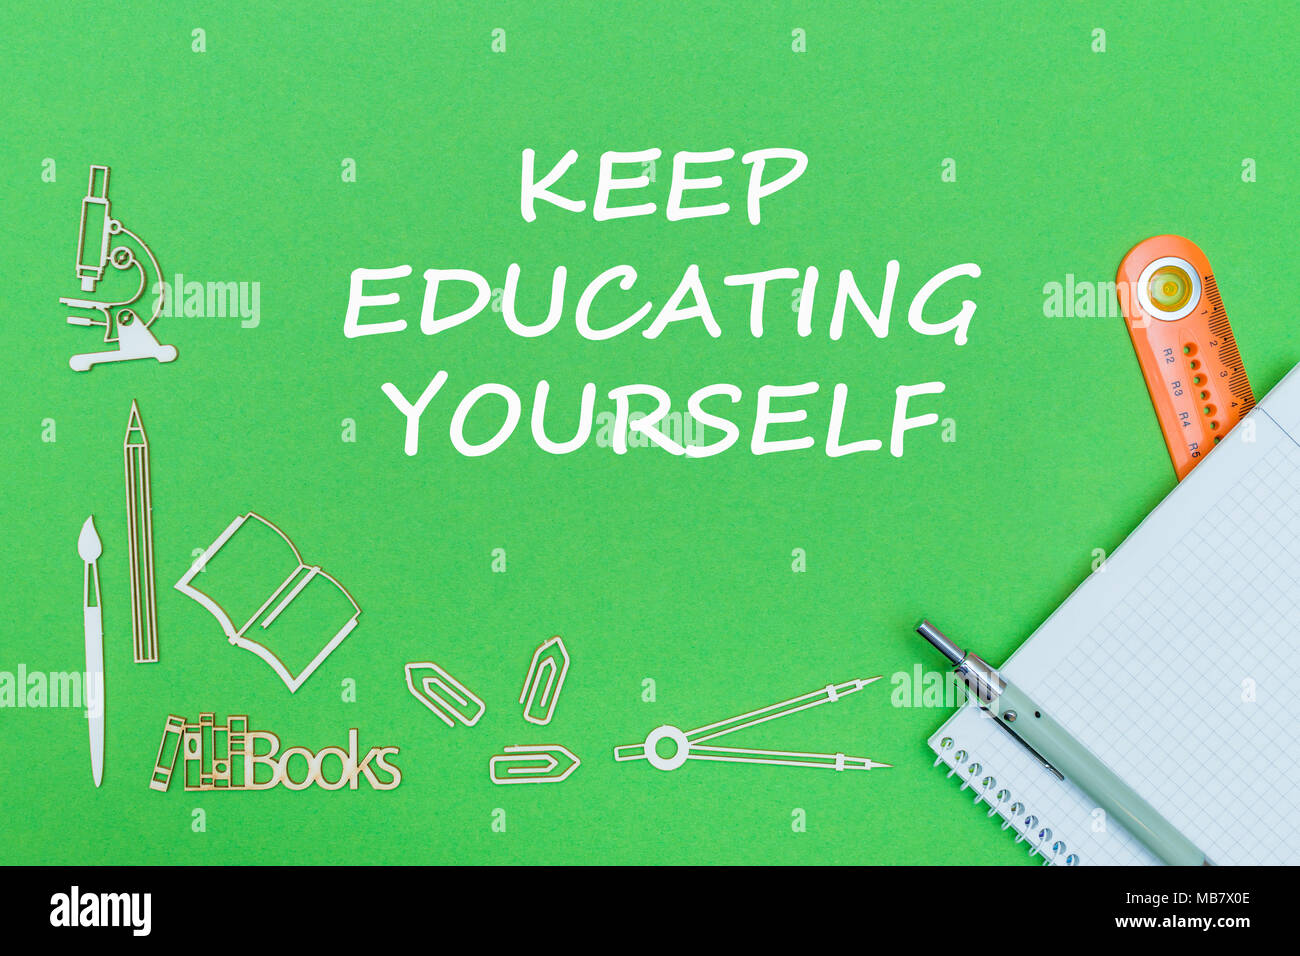 concept school, text keep educating yourself, school supplies wooden miniatures, notebook, ruler, pen on green backbord - Stock Image